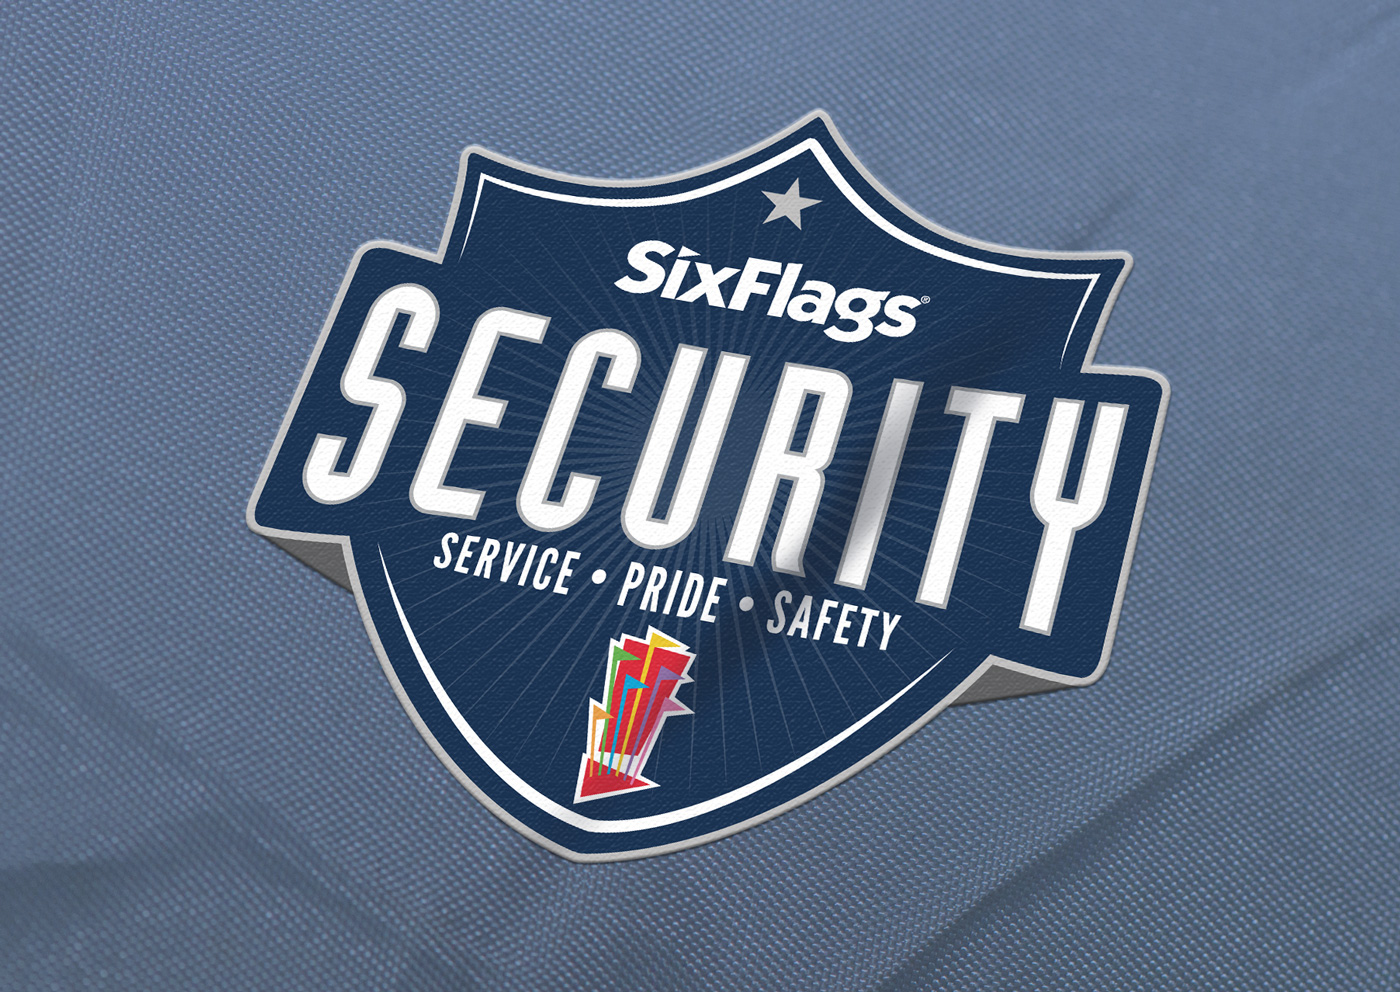 Six Flags Security Logo on Uniforms and Apparel